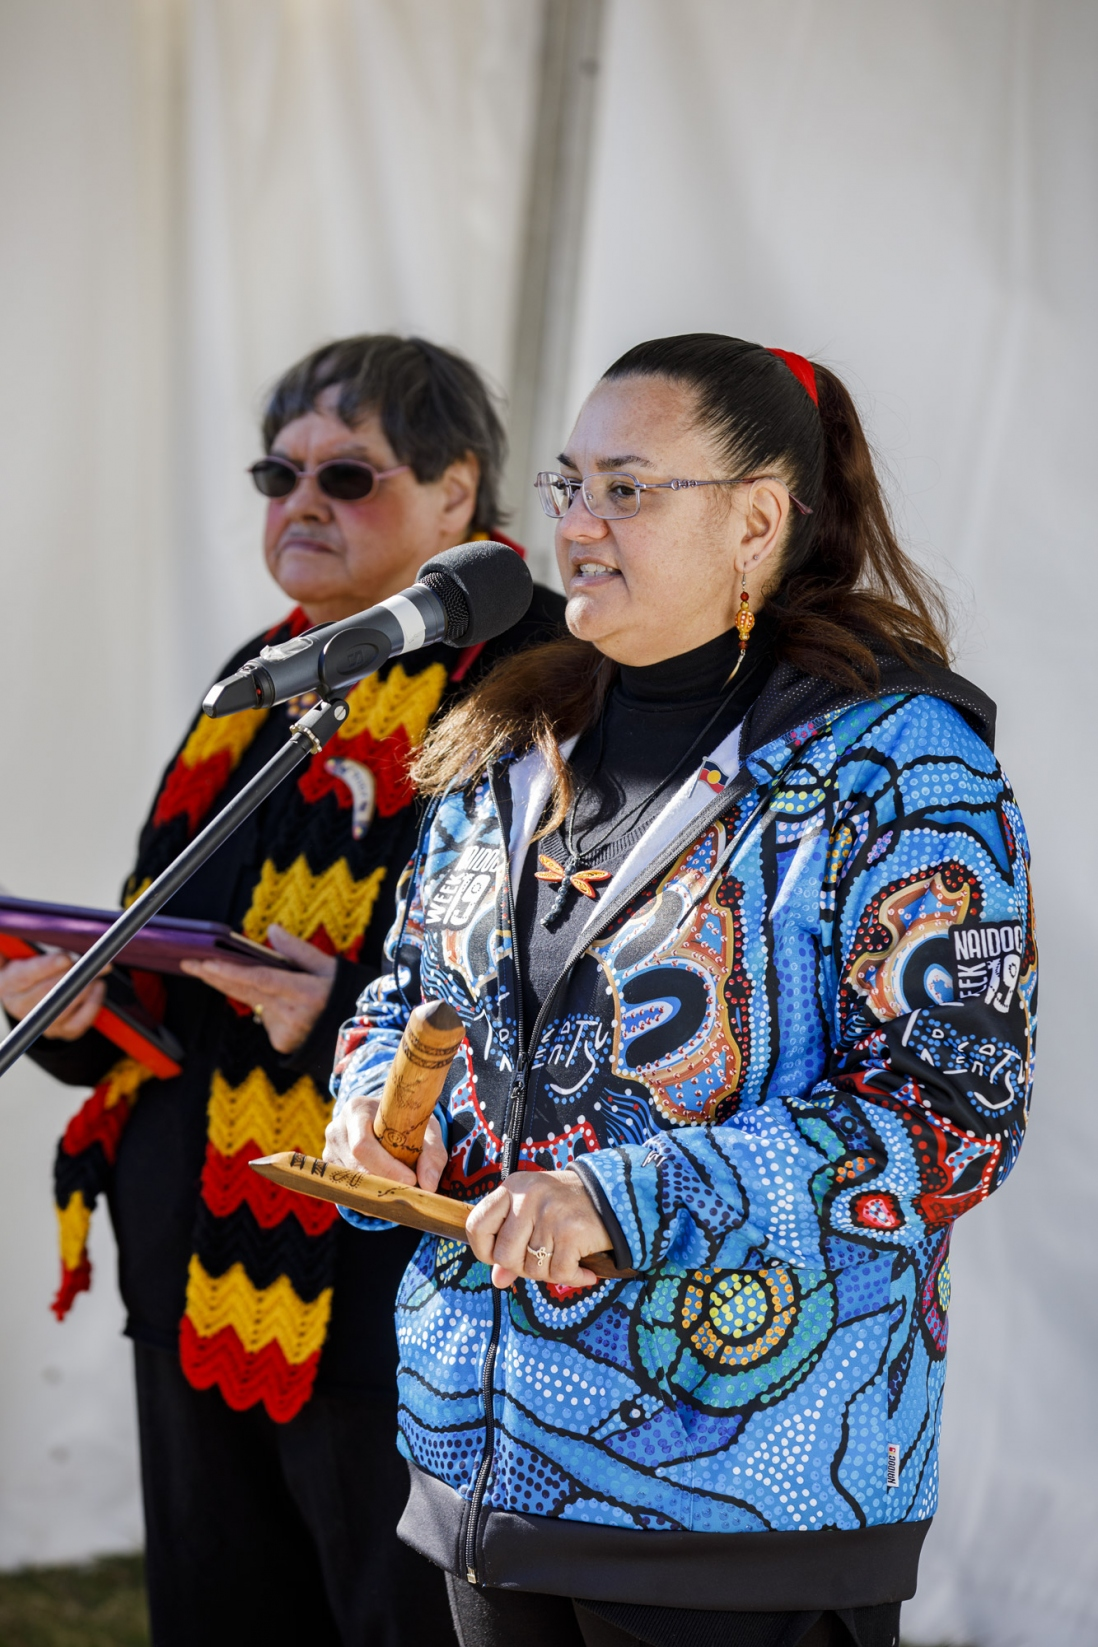 Woman holding clapsticks speaking at microphone with another woman in background; both are wearing colourful clothing.